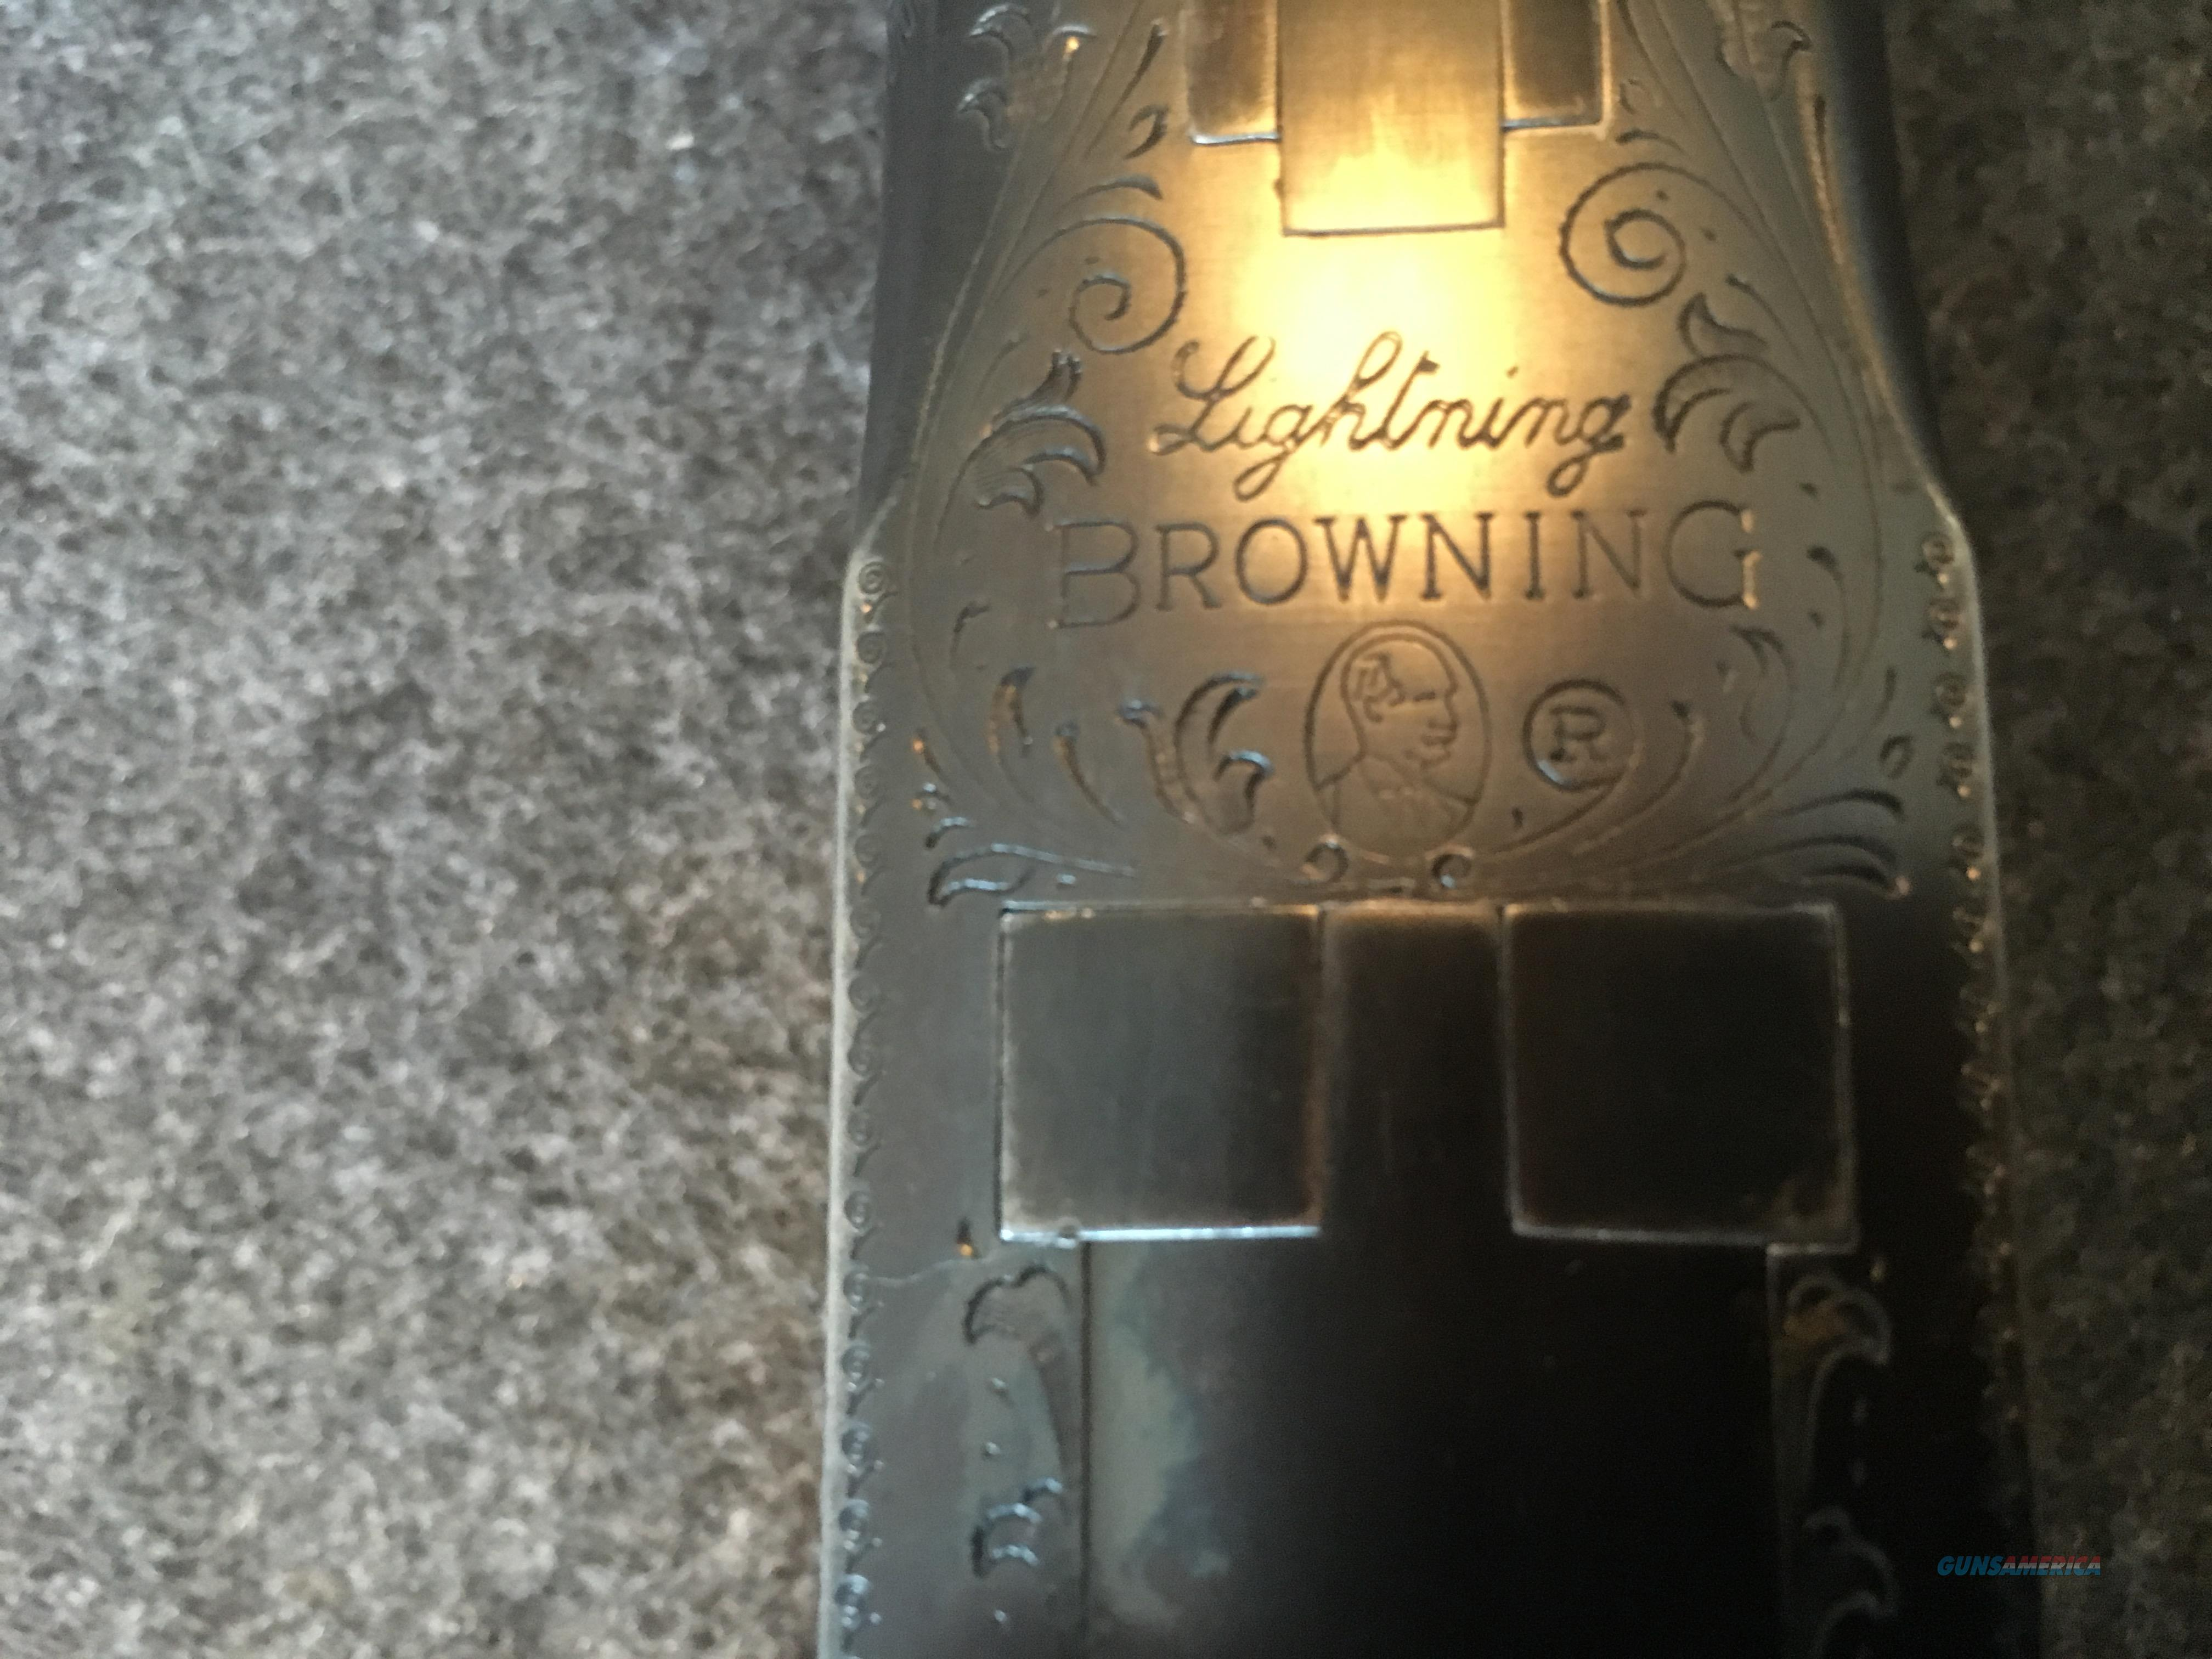 "BELGIUM BROWNING  OVER/UNDER ""LIGHTING"" (Manufactured in 1962)   Guns > Shotguns > Browning Shotguns > Over Unders > Belgian Manufacture"